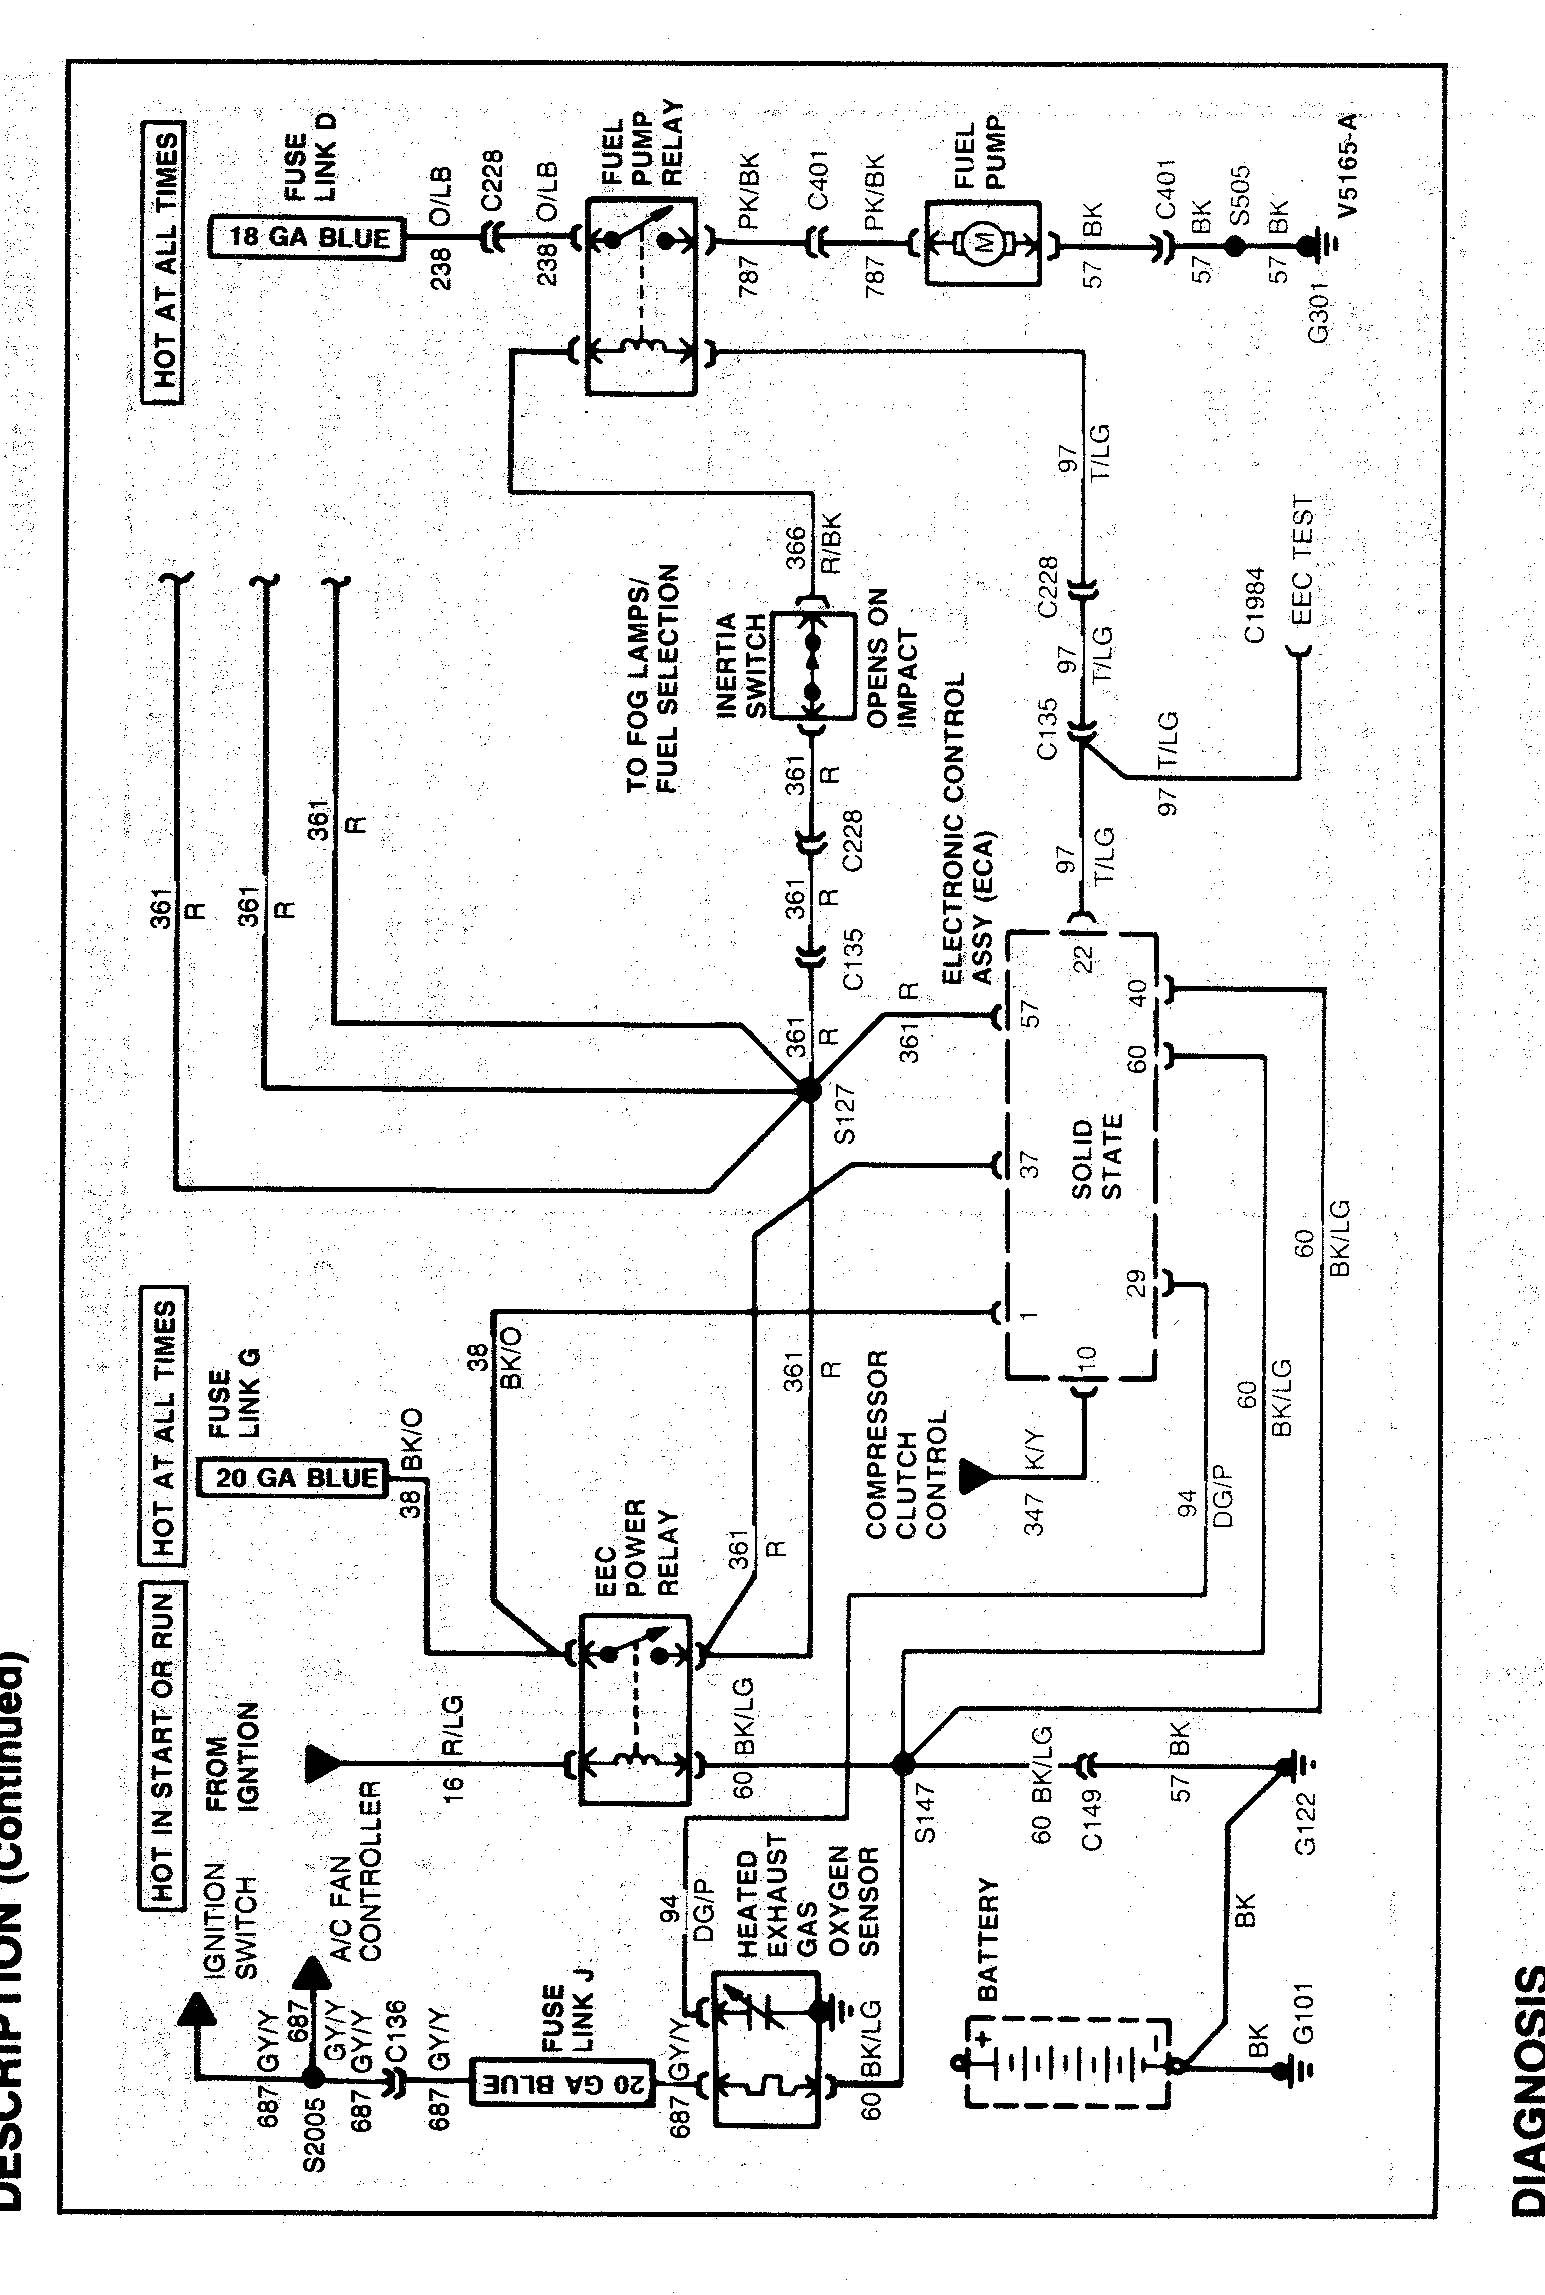 2007 ford f150 electrical schematic